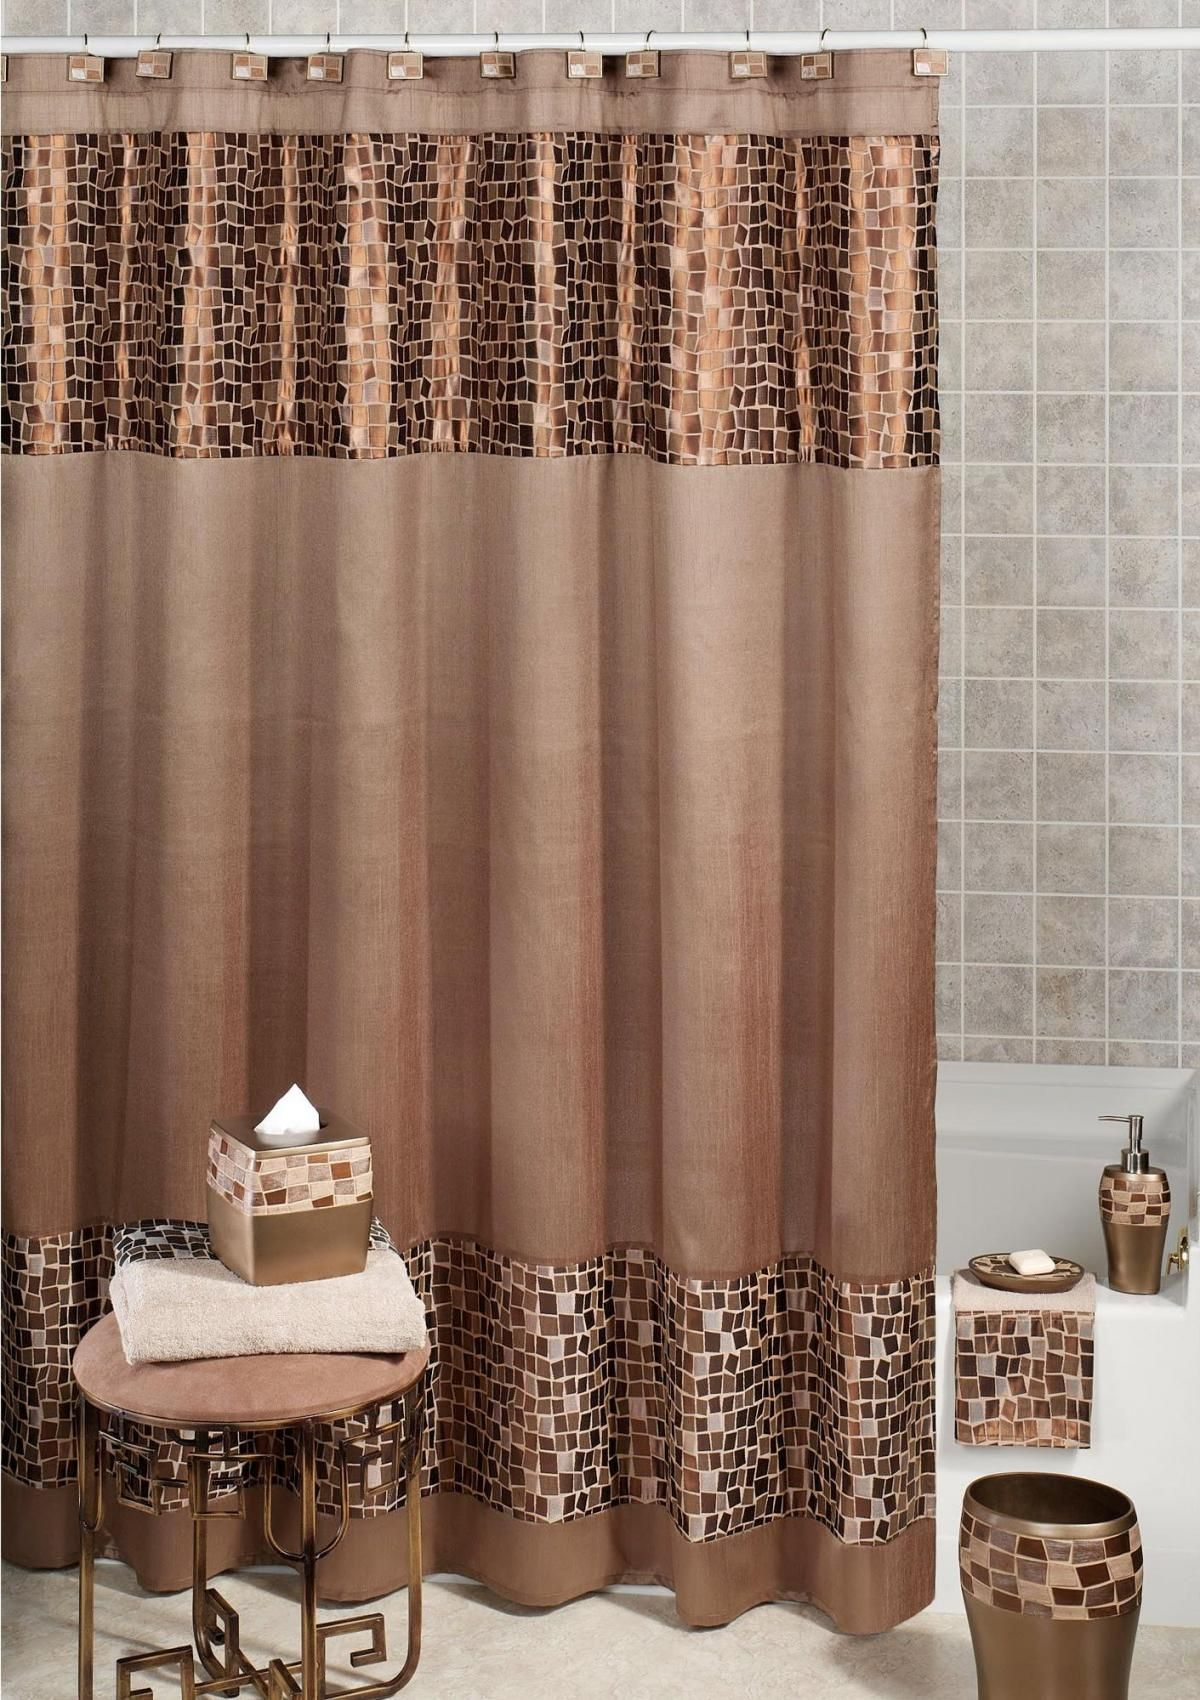 Remarkable Fabric Shower Curtains For Elegant Bathroom Brown Shower Curtain Fancy Shower Curtains Elegant Shower Curtains